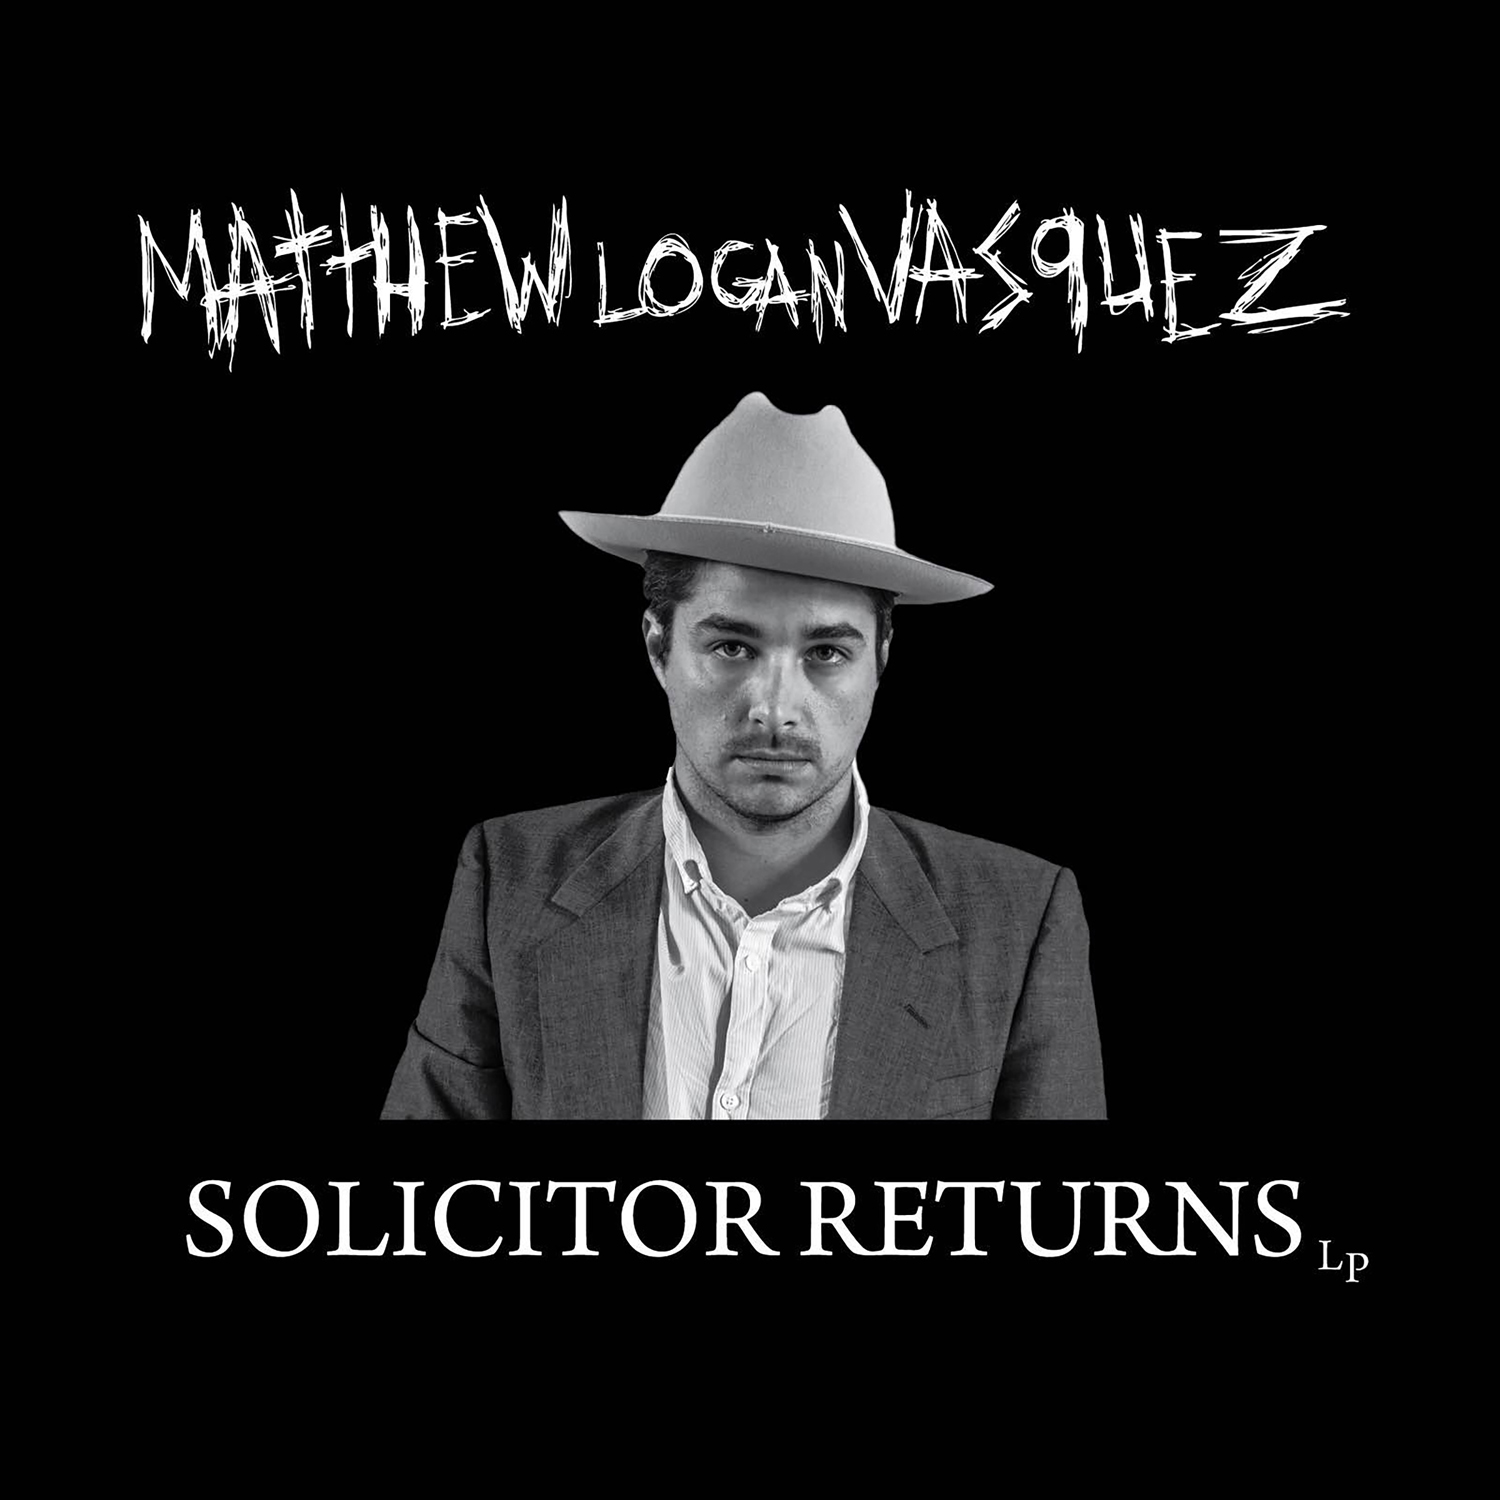 Solicitor Returns - Matthew Logan Vasquez